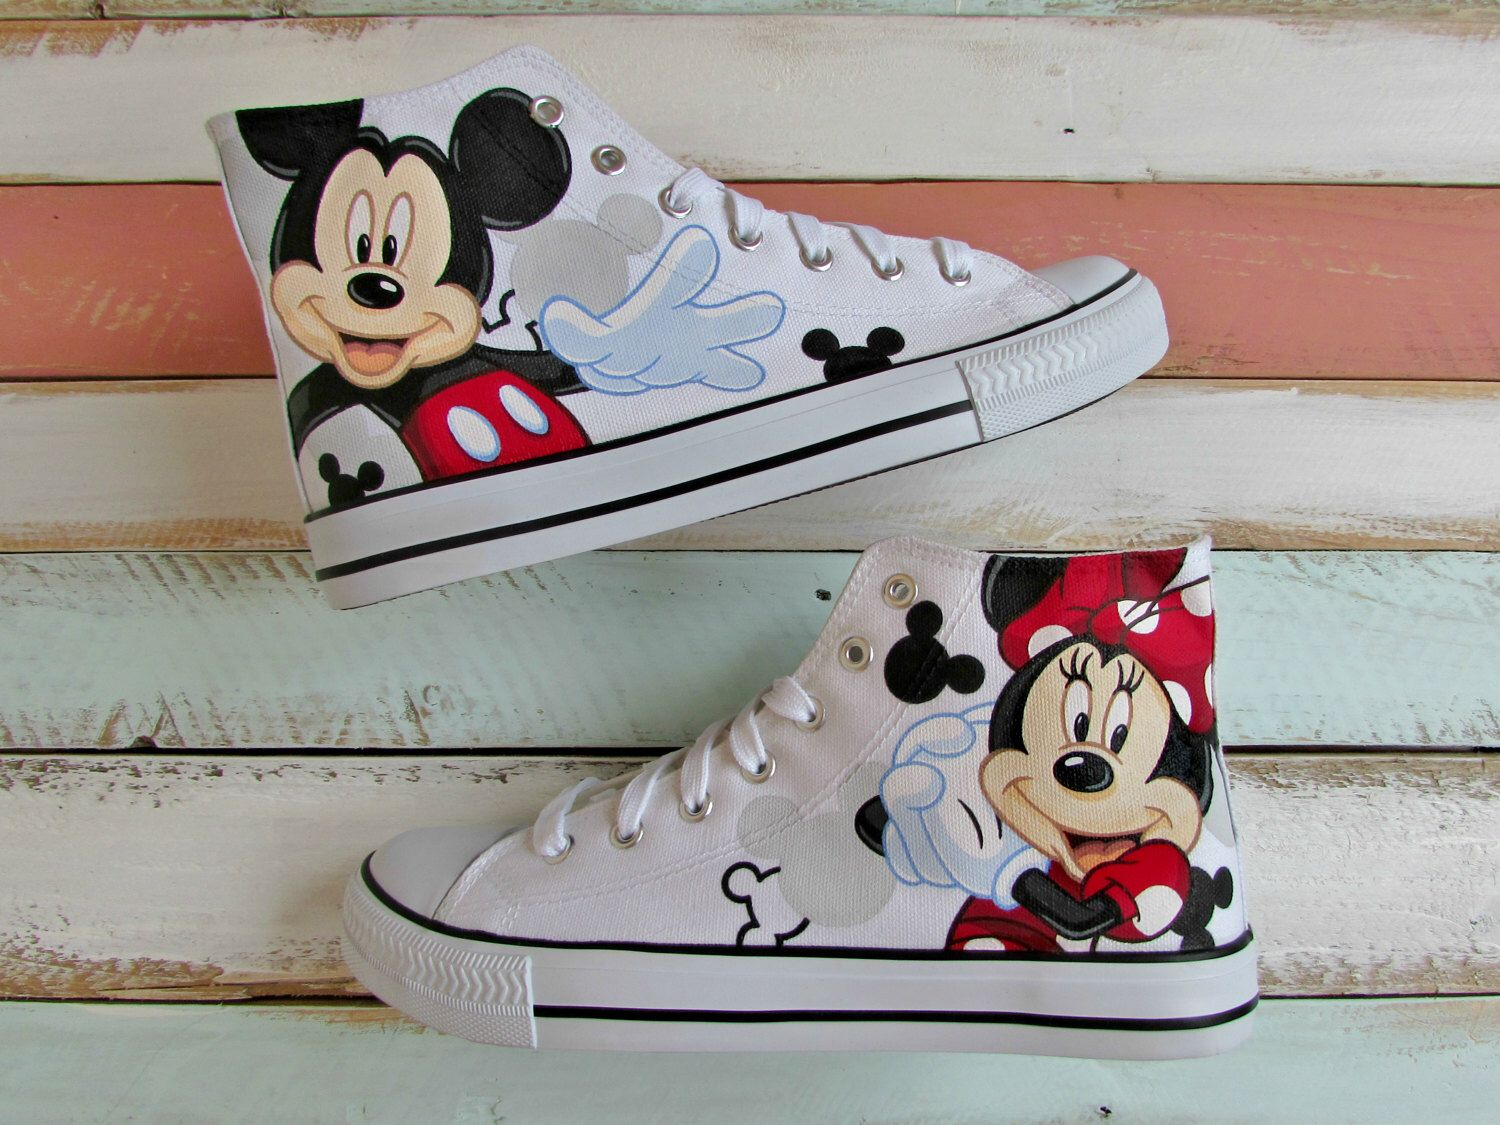 8ddfd93ae430 Discover ideas about Mickey Mouse Converse